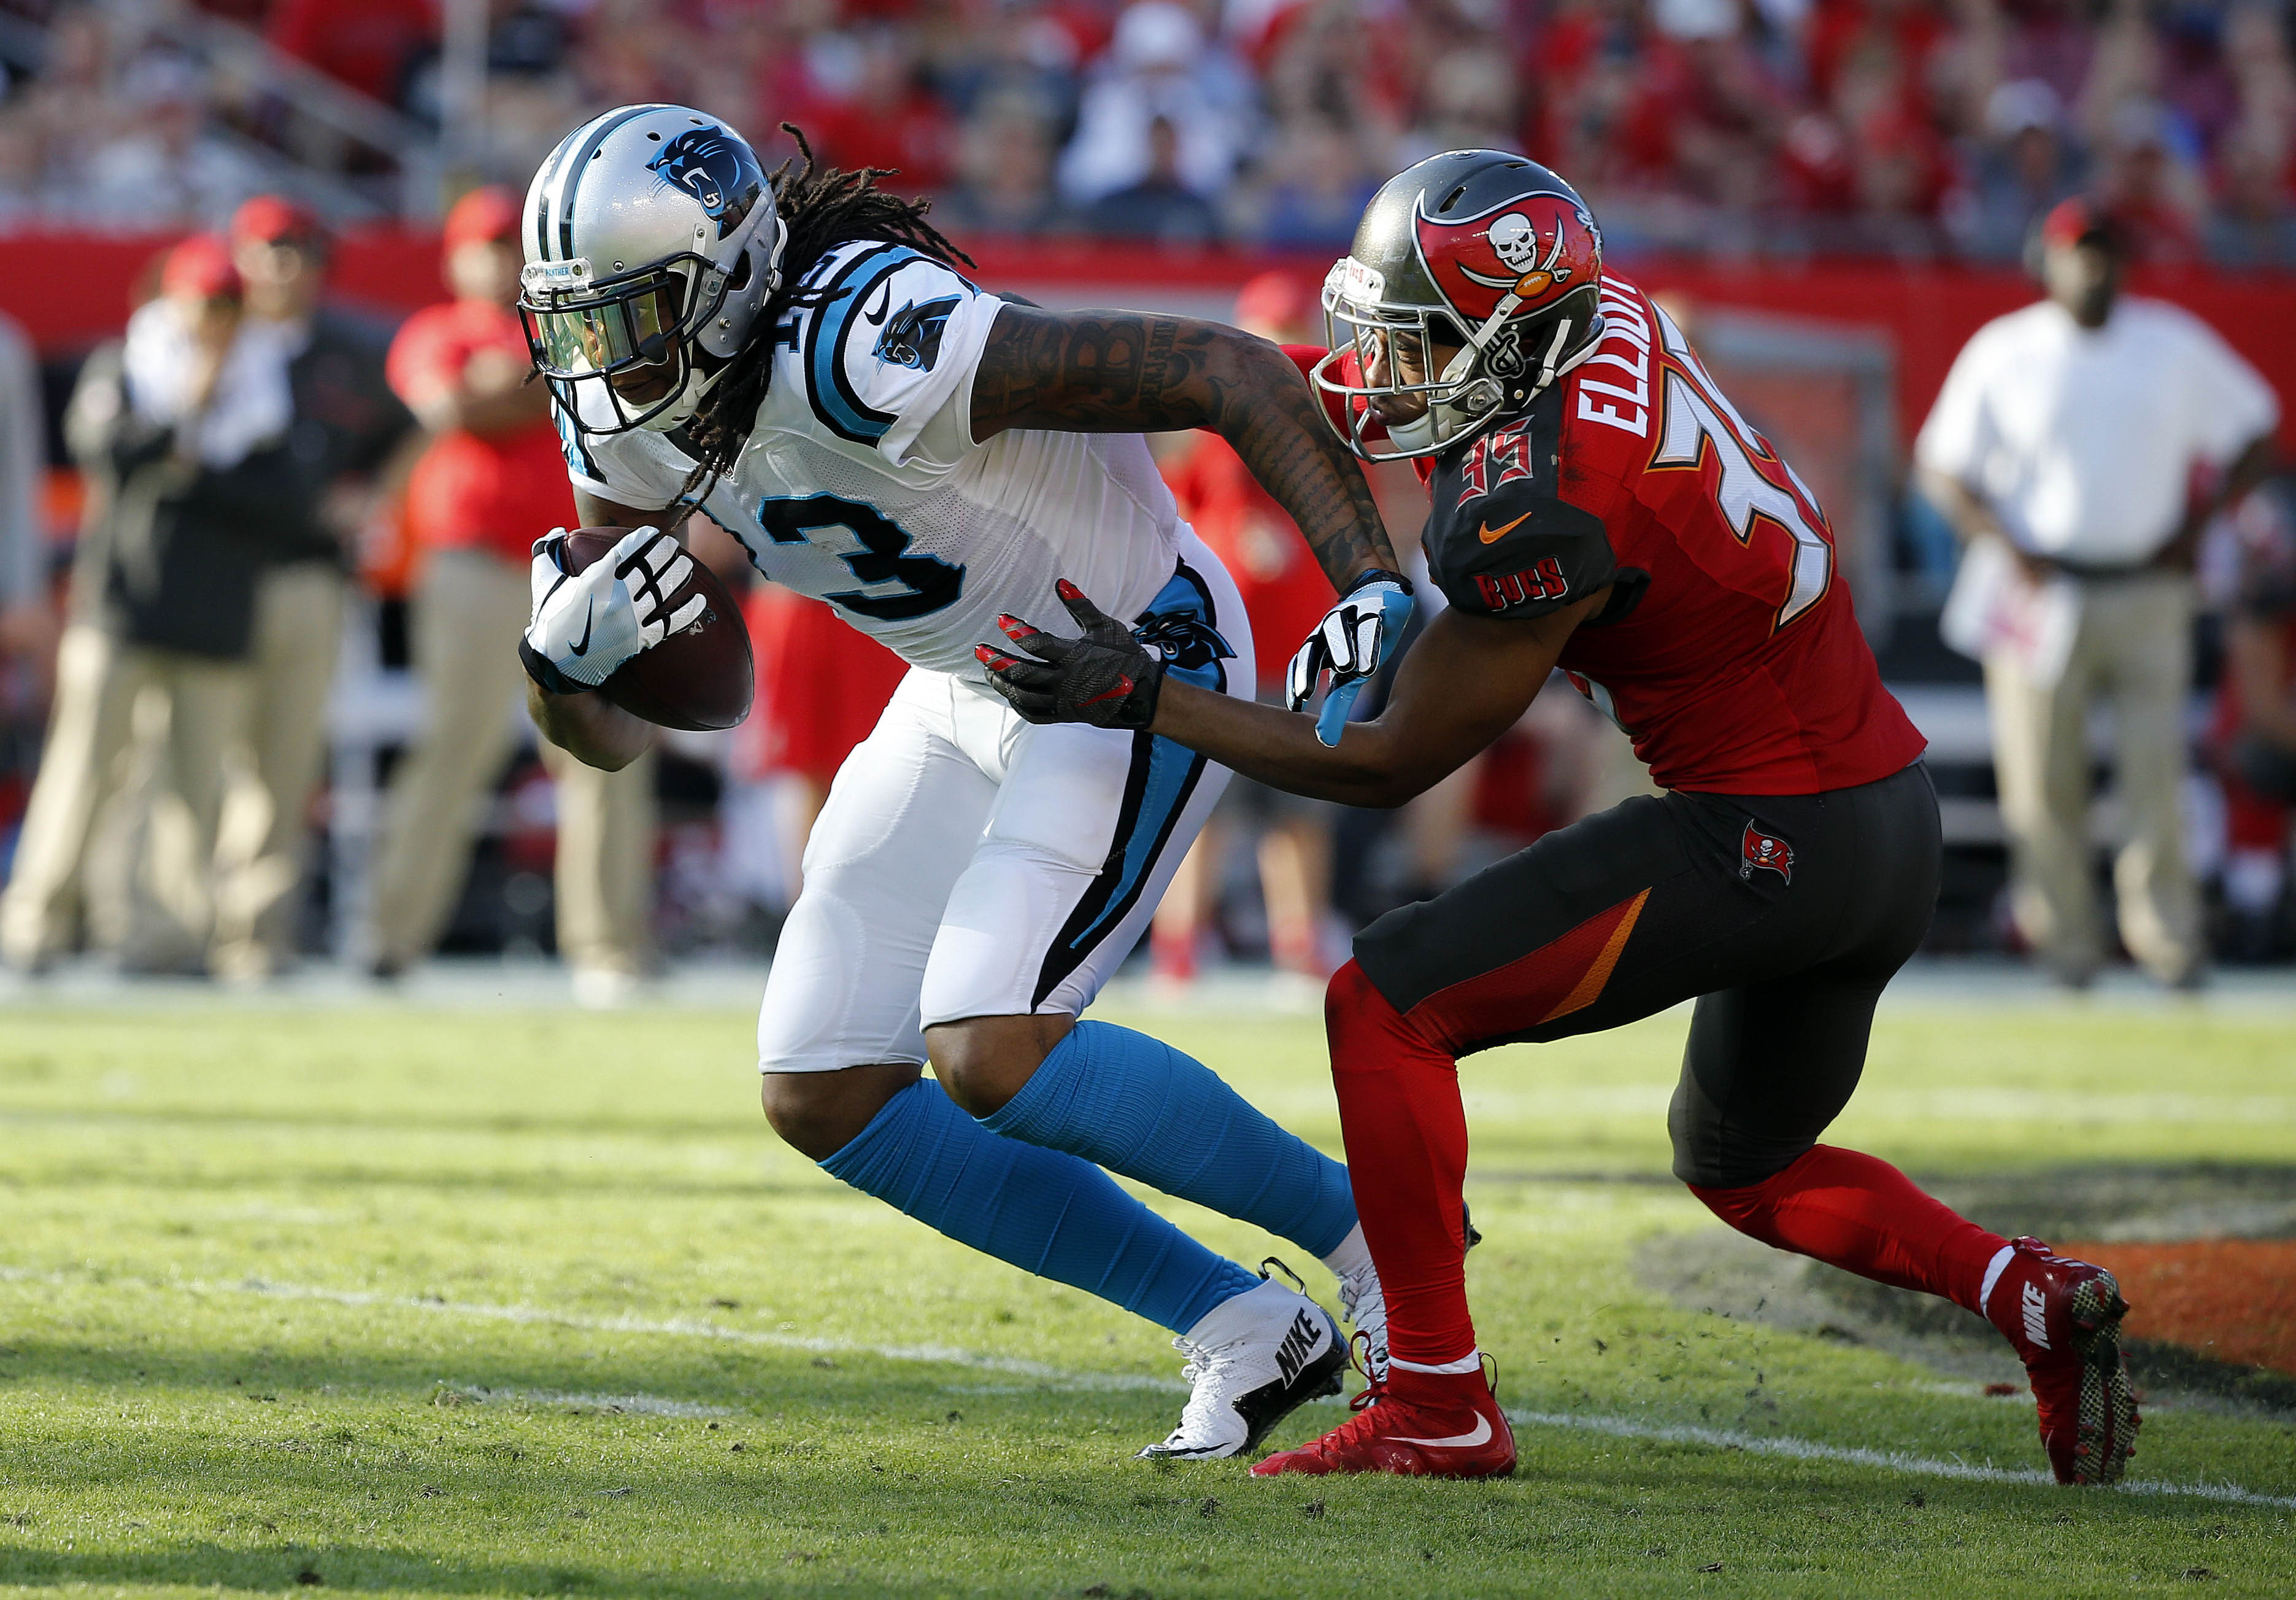 9782107-nfl-carolina-panthers-at-tampa-bay-buccaneers